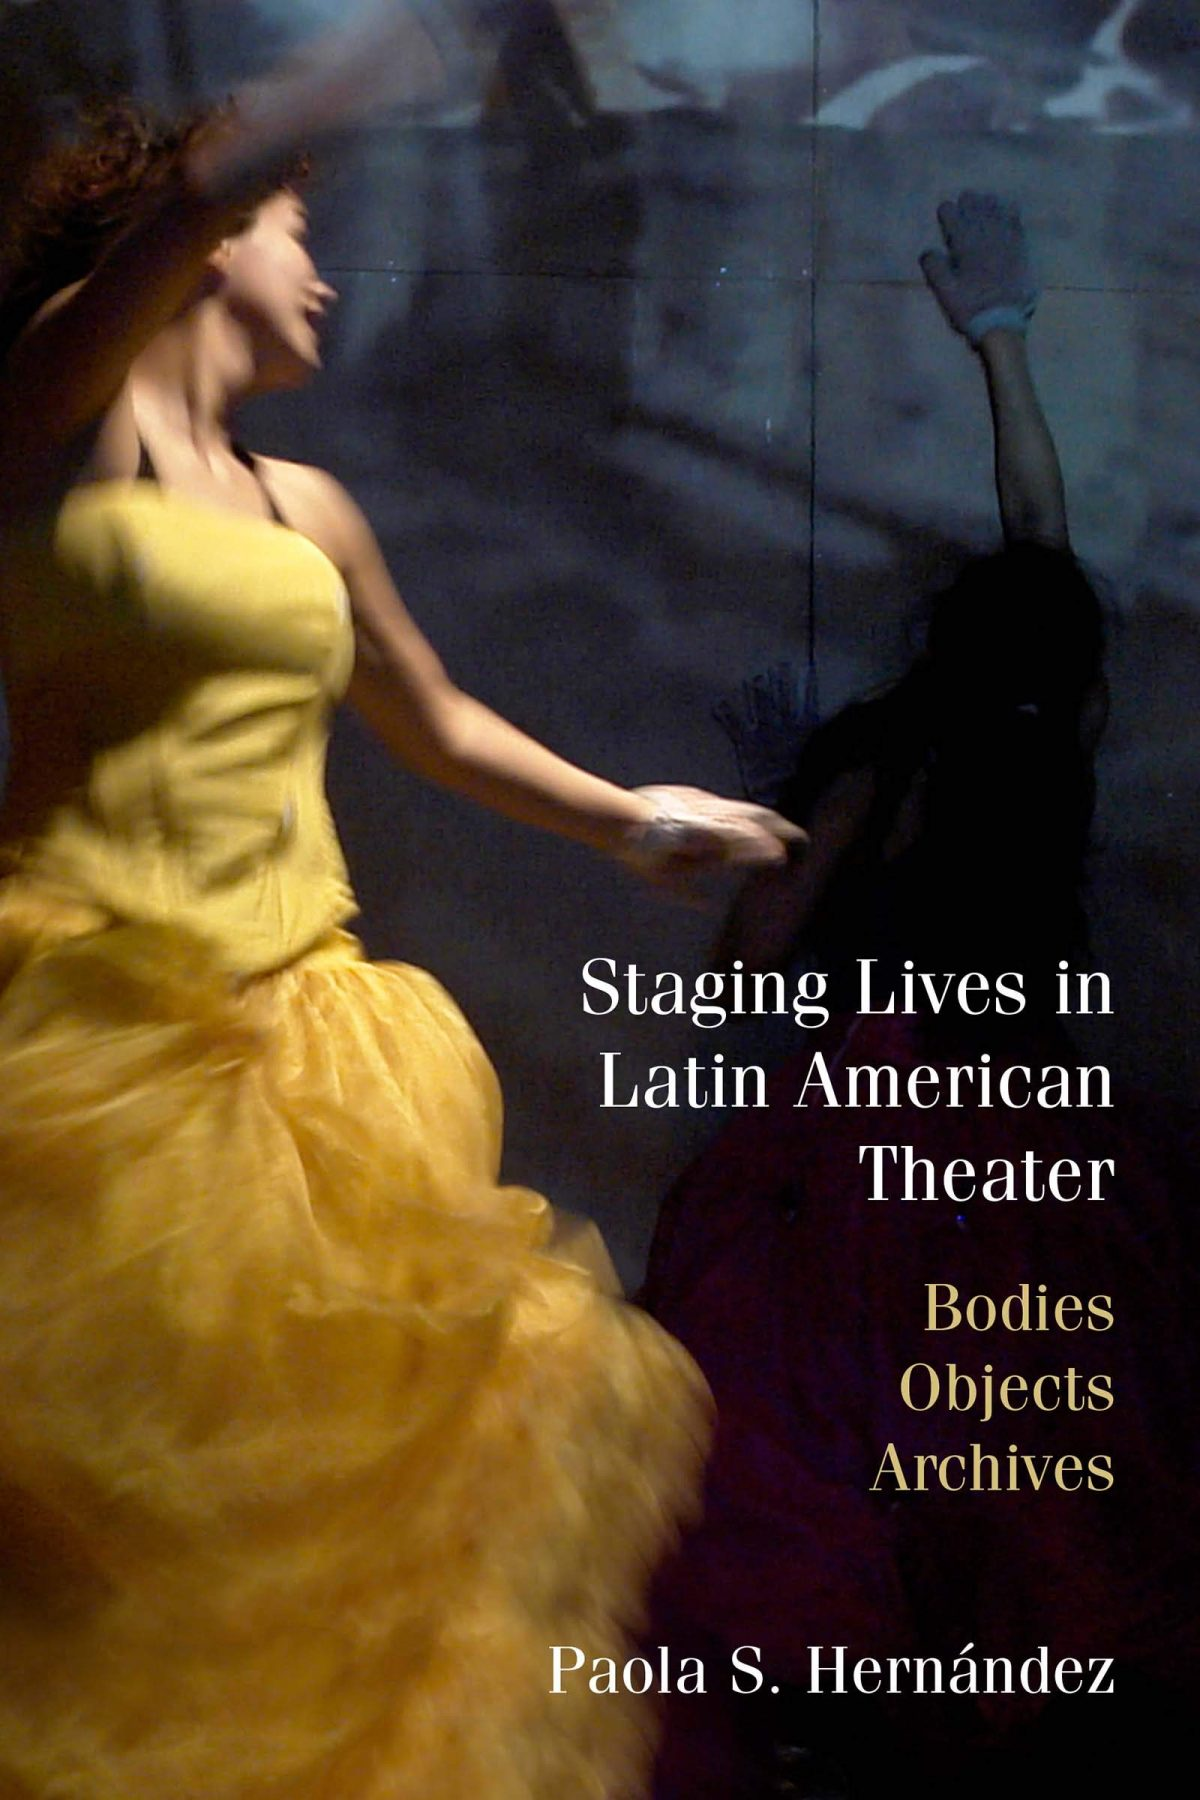 The image is over the cover of the book of Staging Lives in Latin American Theater. The background is dark gray with the image of a woman in a yellow dress in moment. Perhaps dancing. Her face is turned and is not fully visible to the viewer.